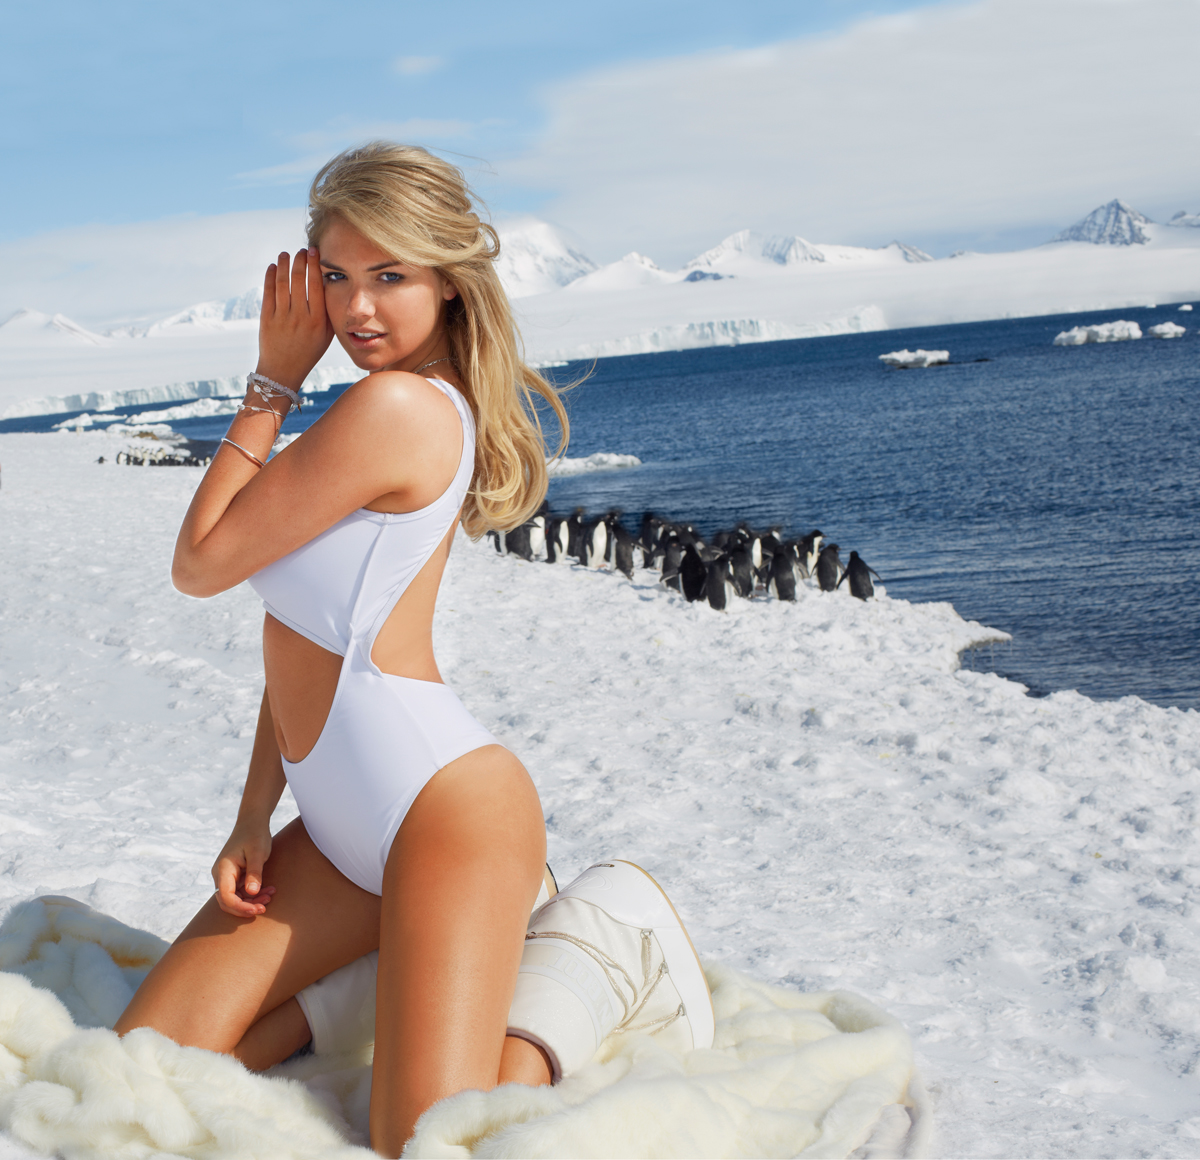 Kate Upton in Antarctica, SI Swimsuit 2013